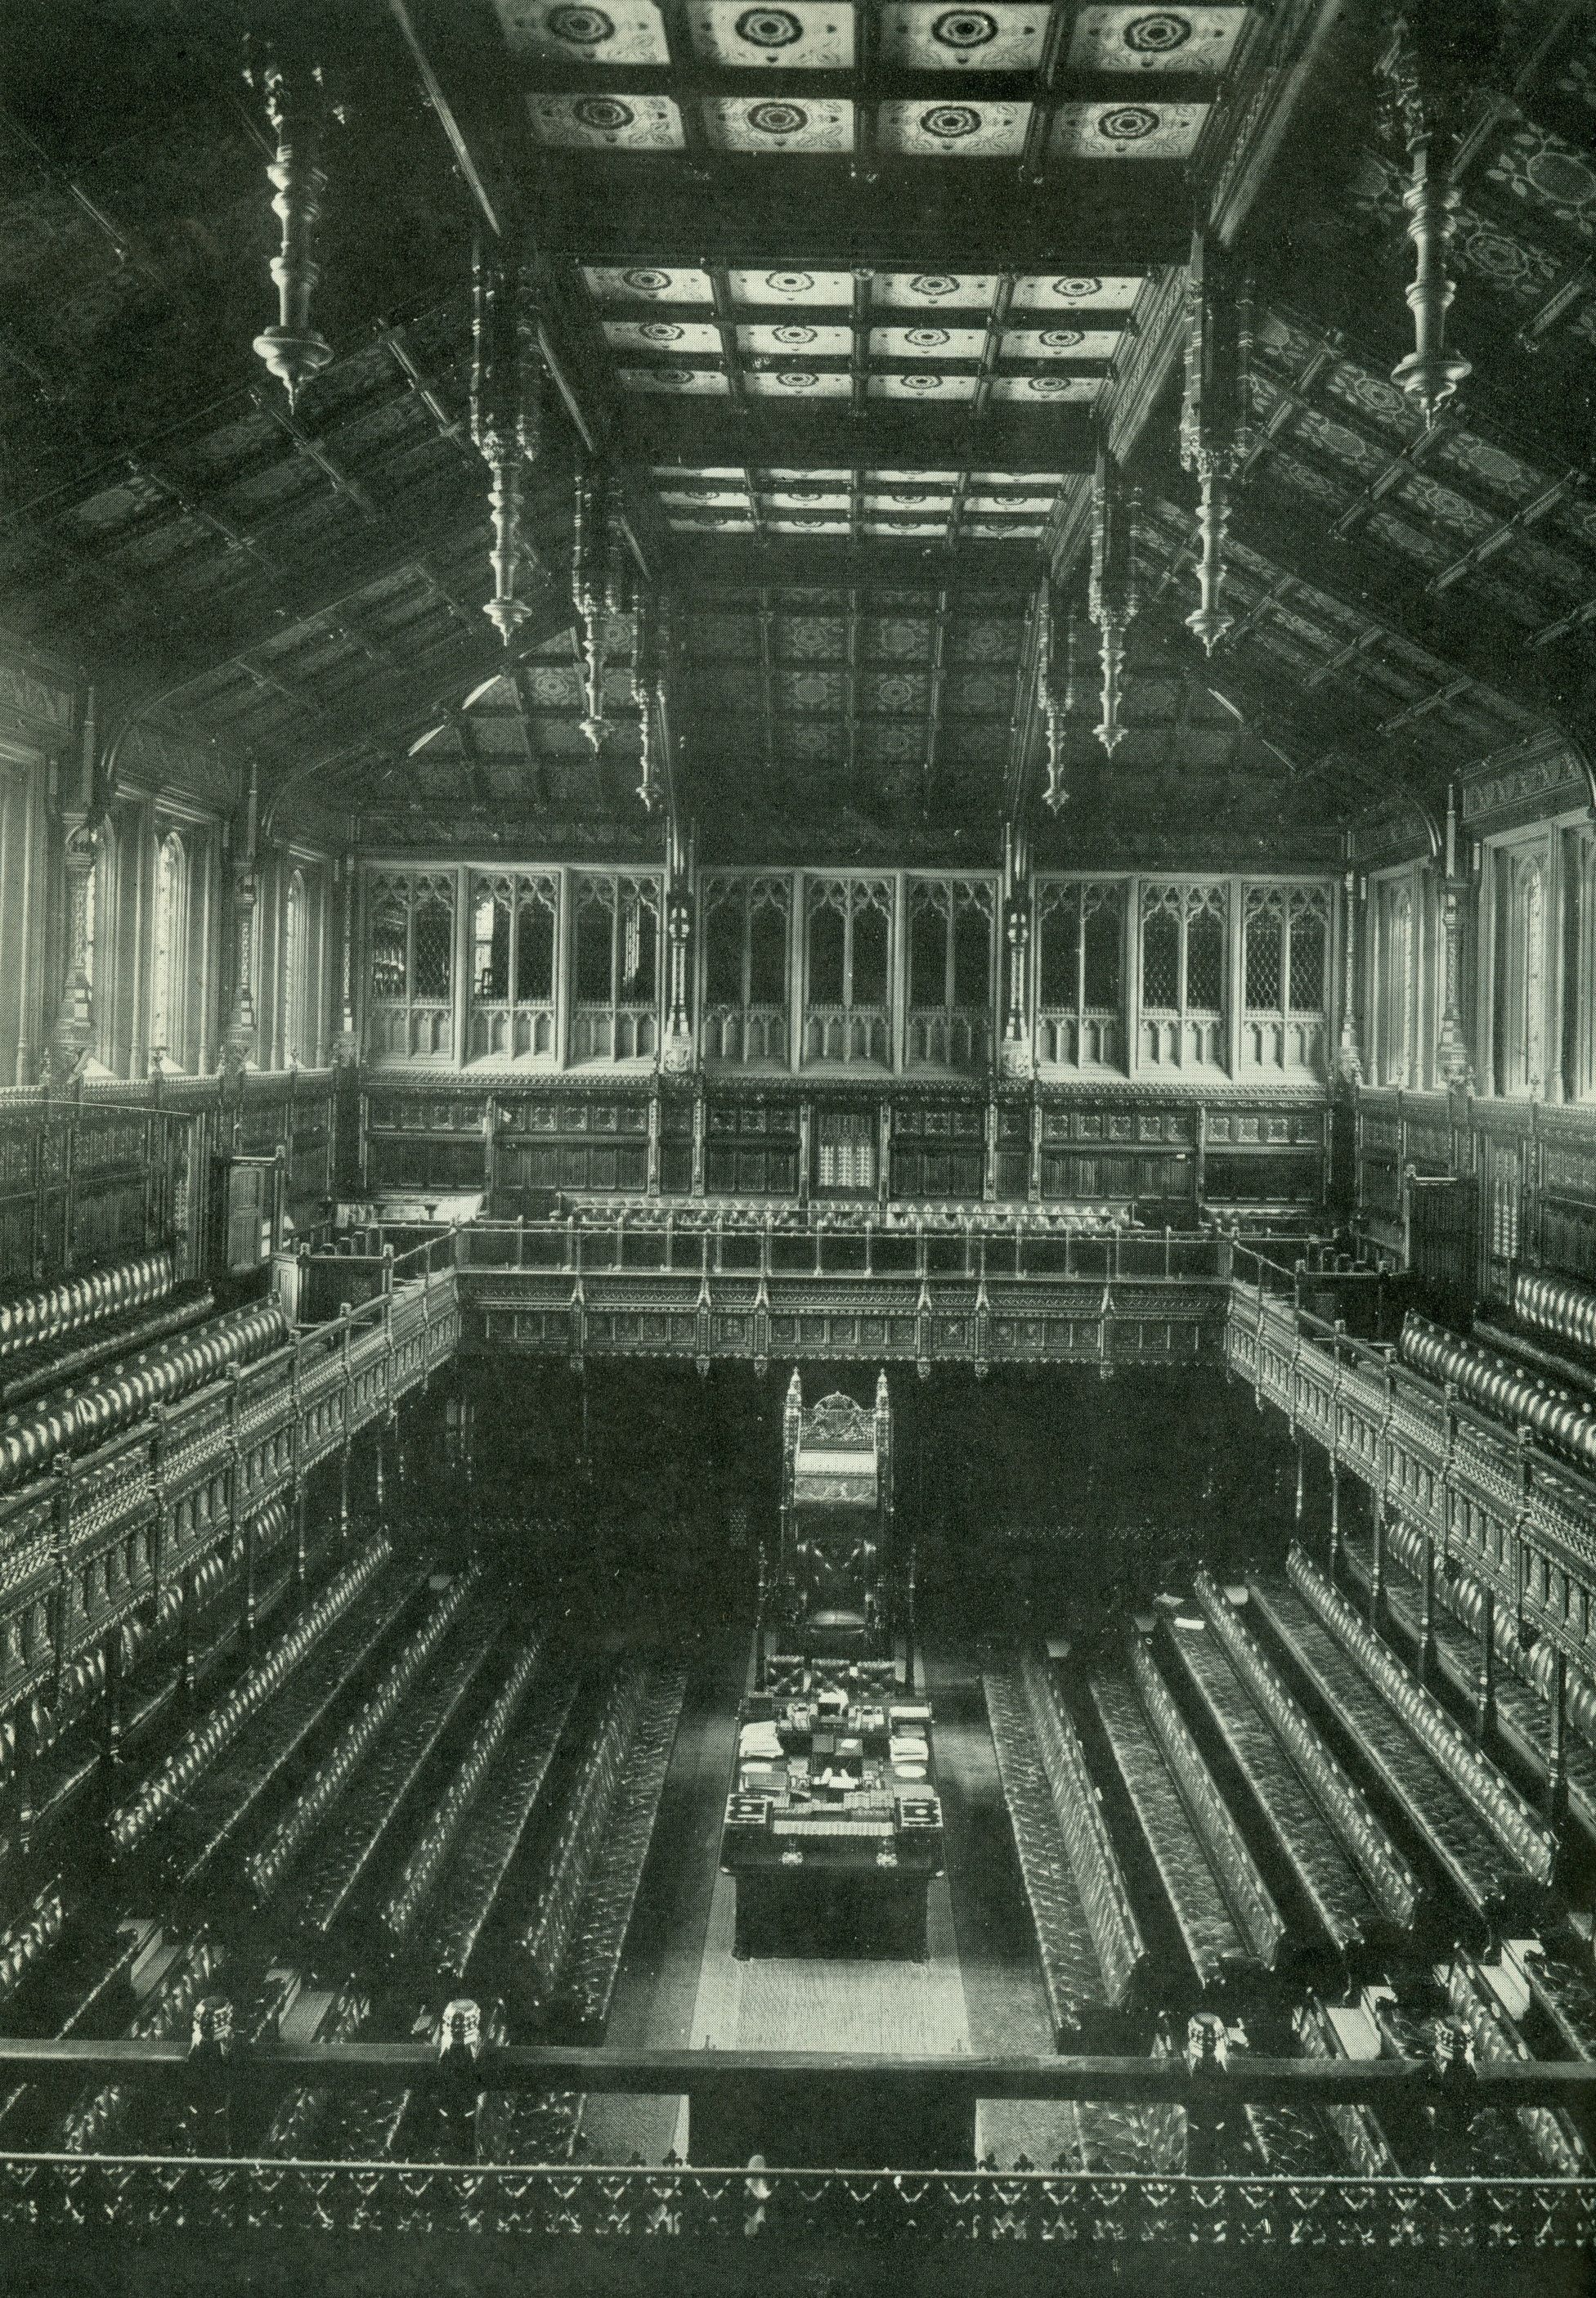 Houses Of Parliament Interior. The old British House of Commons interior  prior to its destruction by German bombing 1941 state banking house tony garnier Theory and Design in the First